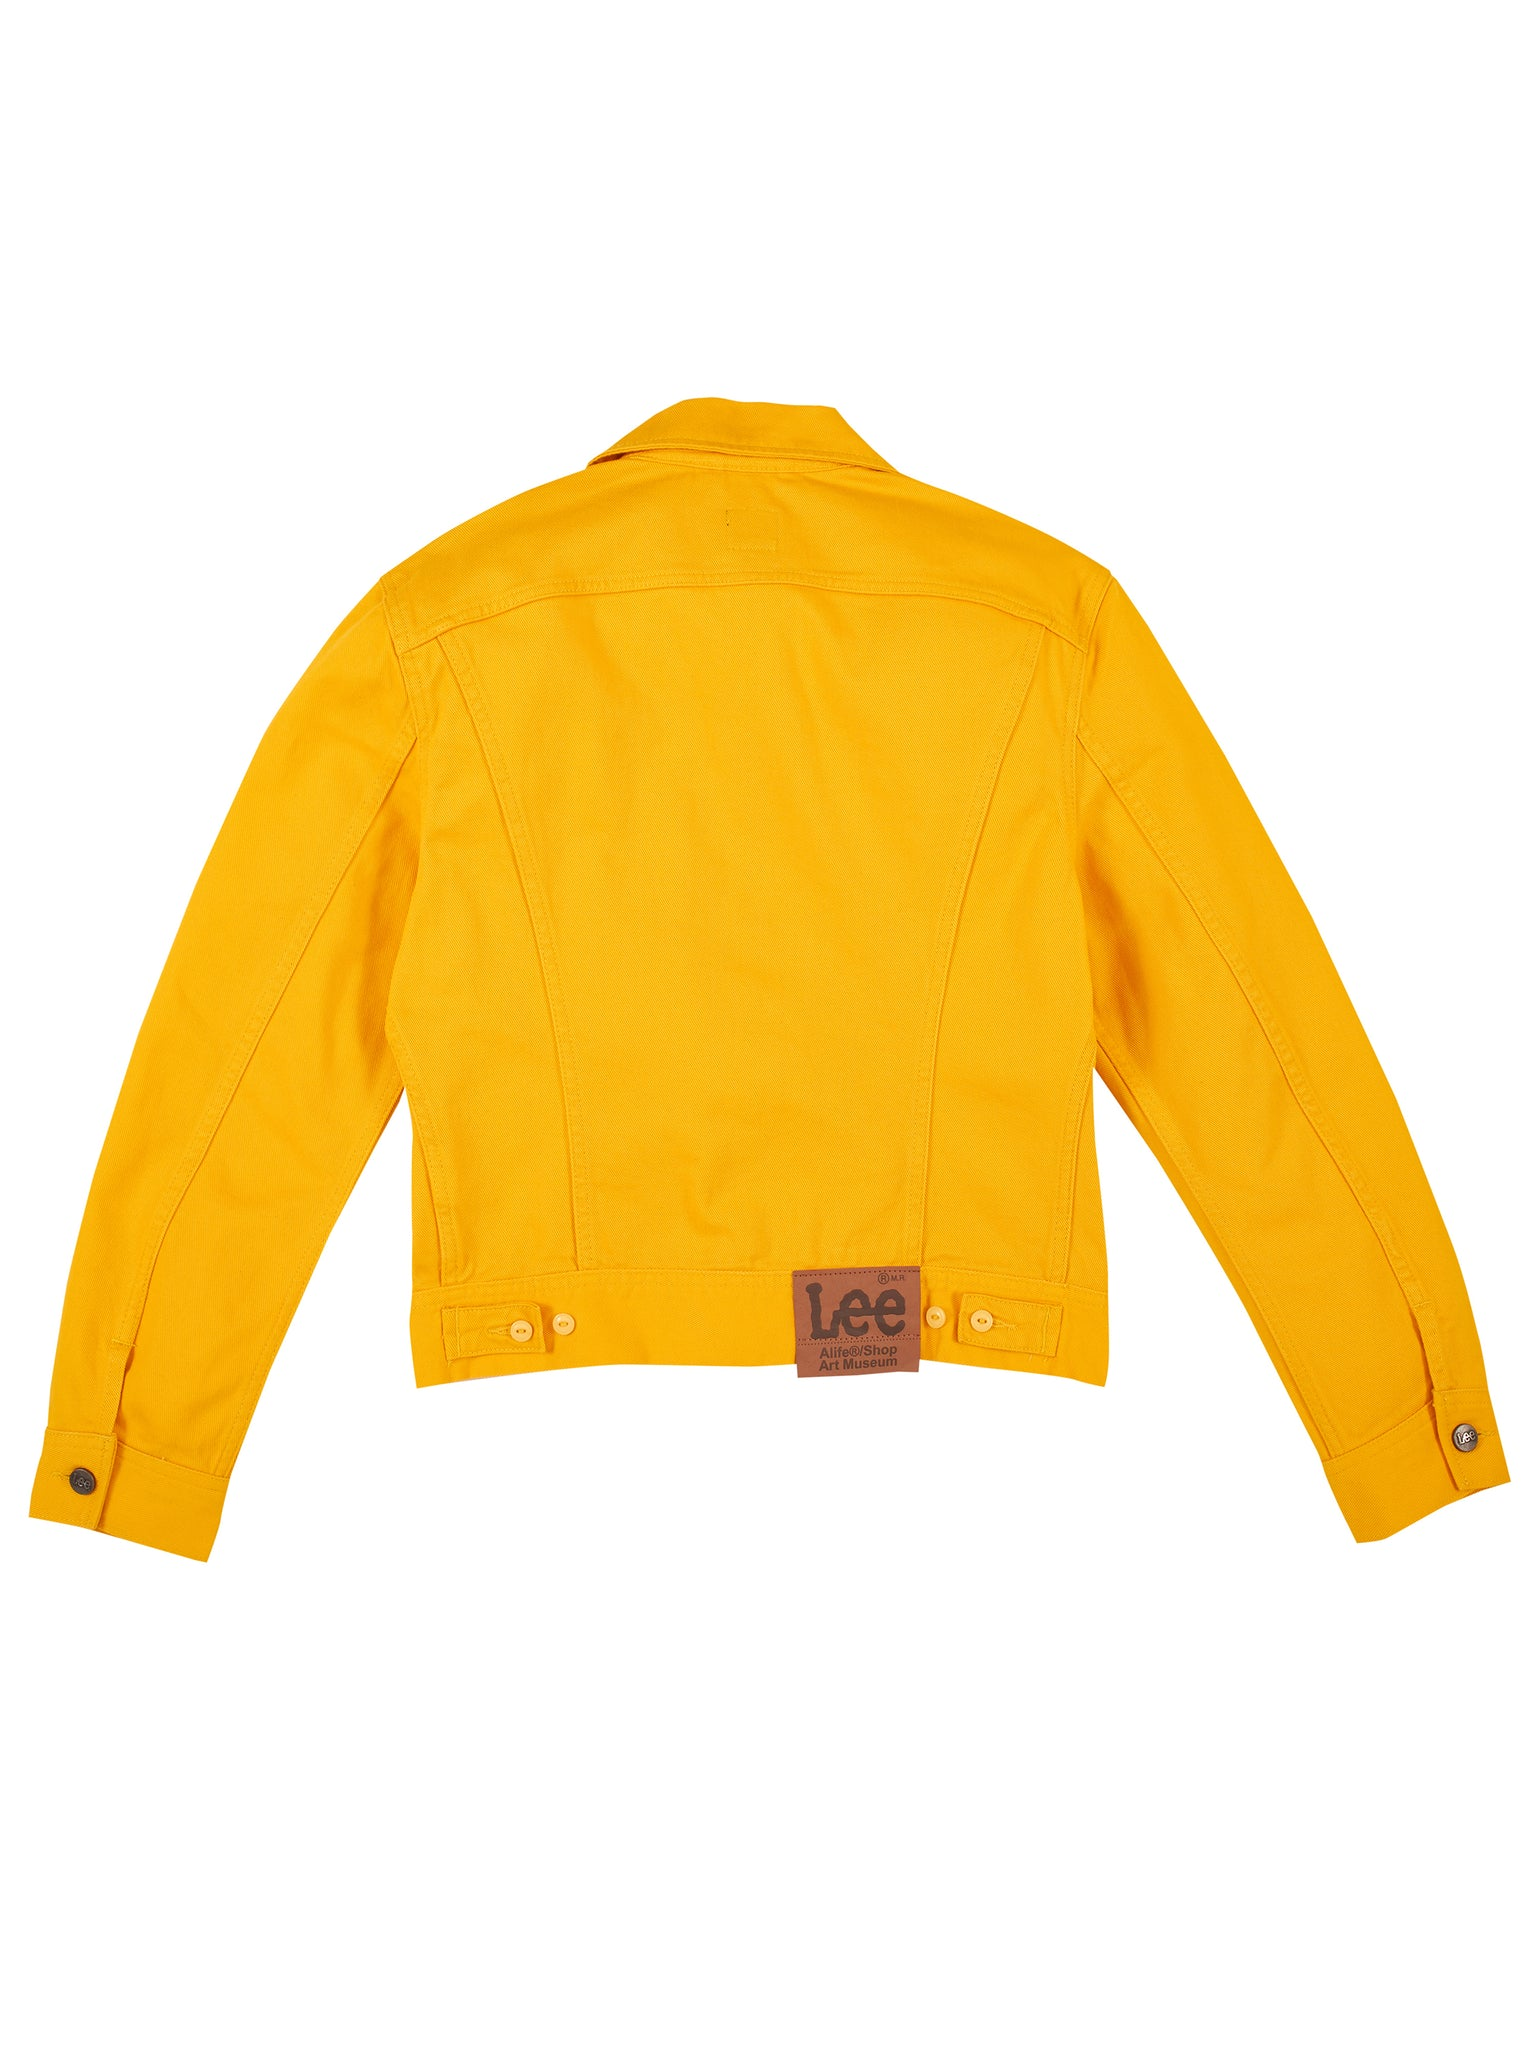 Alife/Lee Colored Cotton Twill Jacket in Yellow rear view